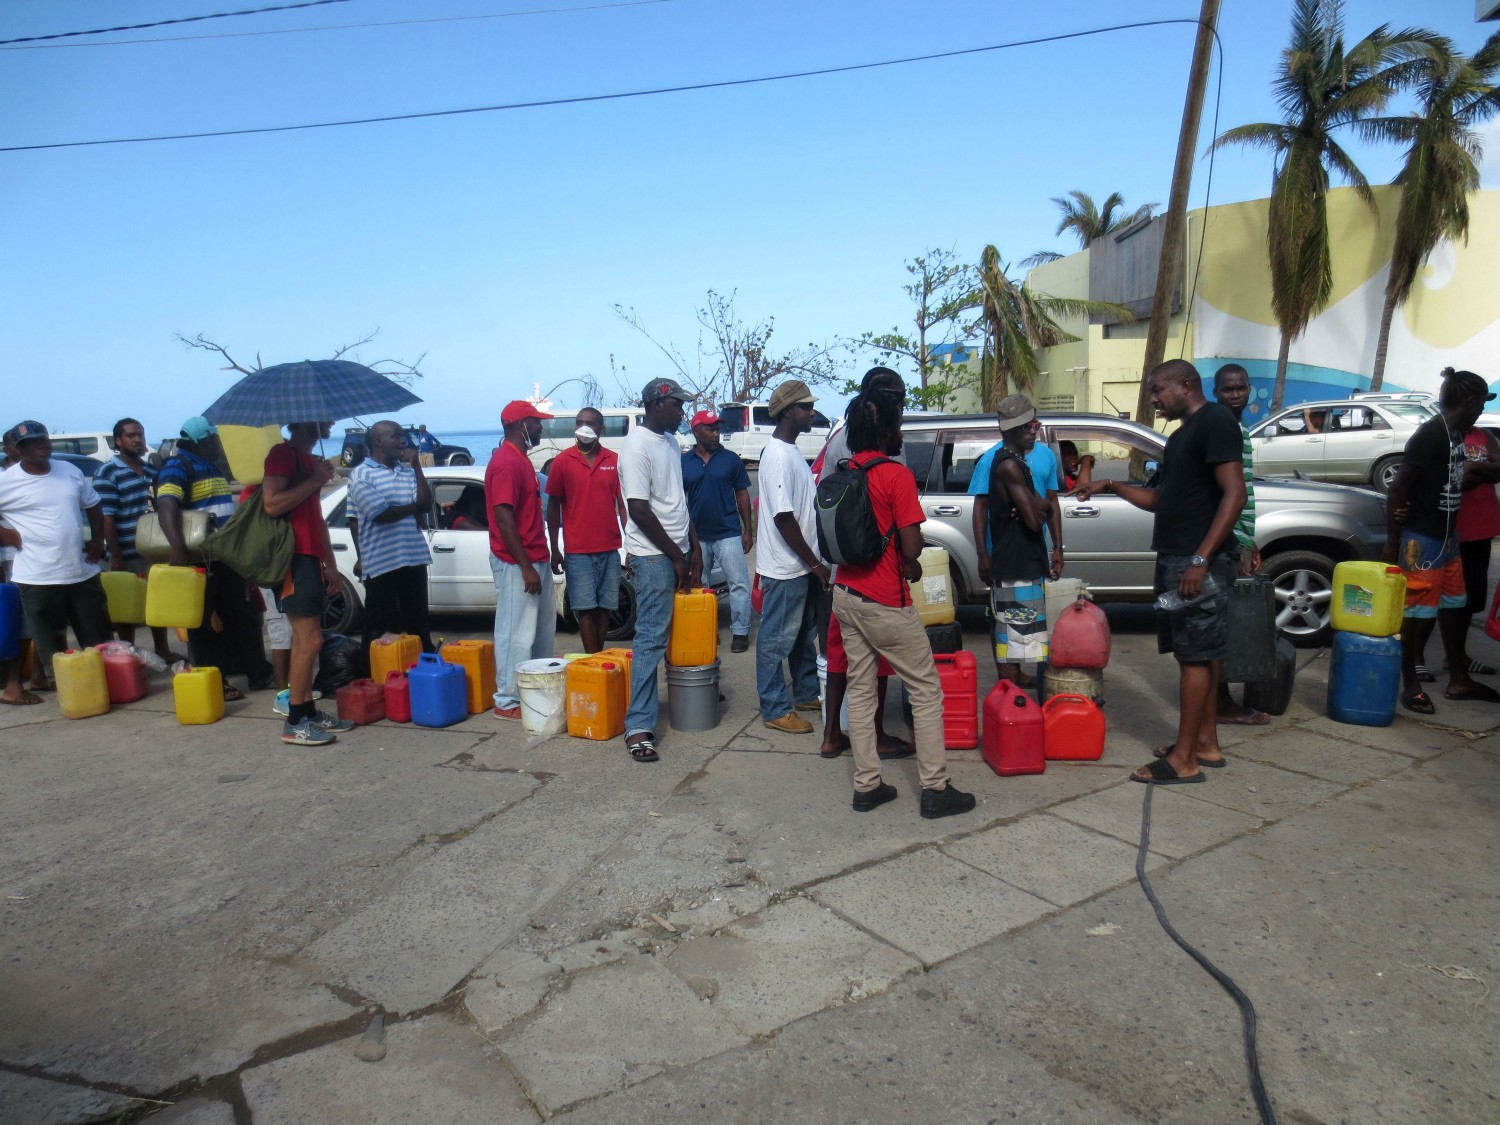 Dominicans standing in line for hours at a gas station to purchase fuel for cars and generators. / Julian Wyss, USAID